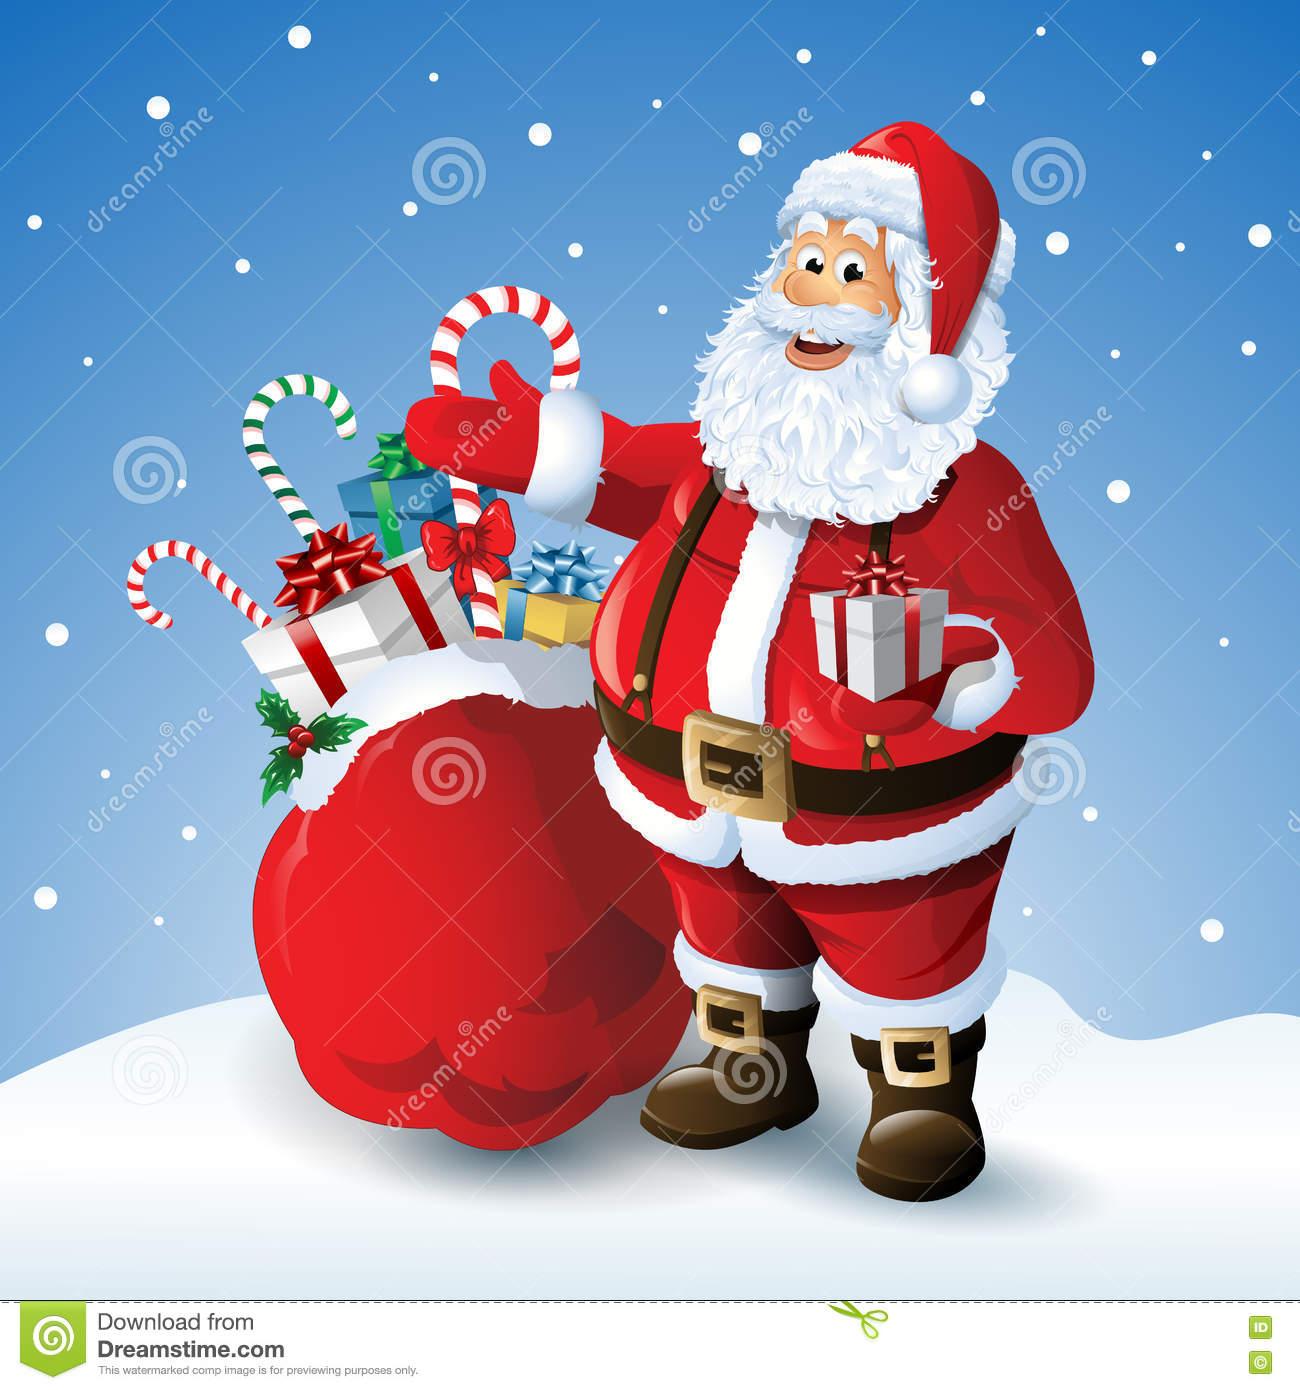 Cartoon Santa Claus With A Bag Of Toys In Front Winter